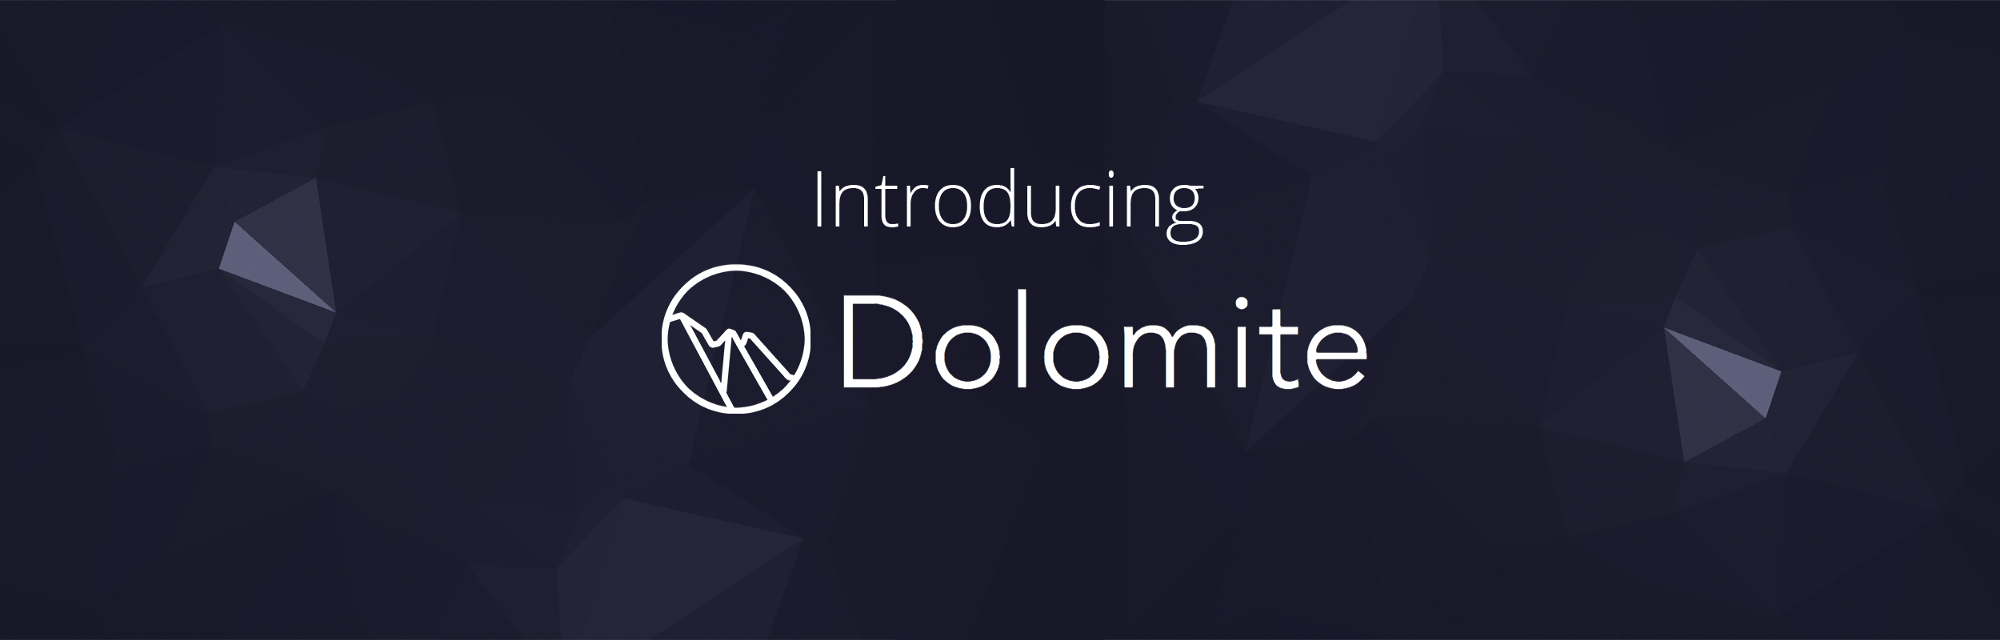 /dolomite-decentralized-exchange-powering-the-blockchain-economy-through-ux-security-and-a6fb4aa8bffa feature image